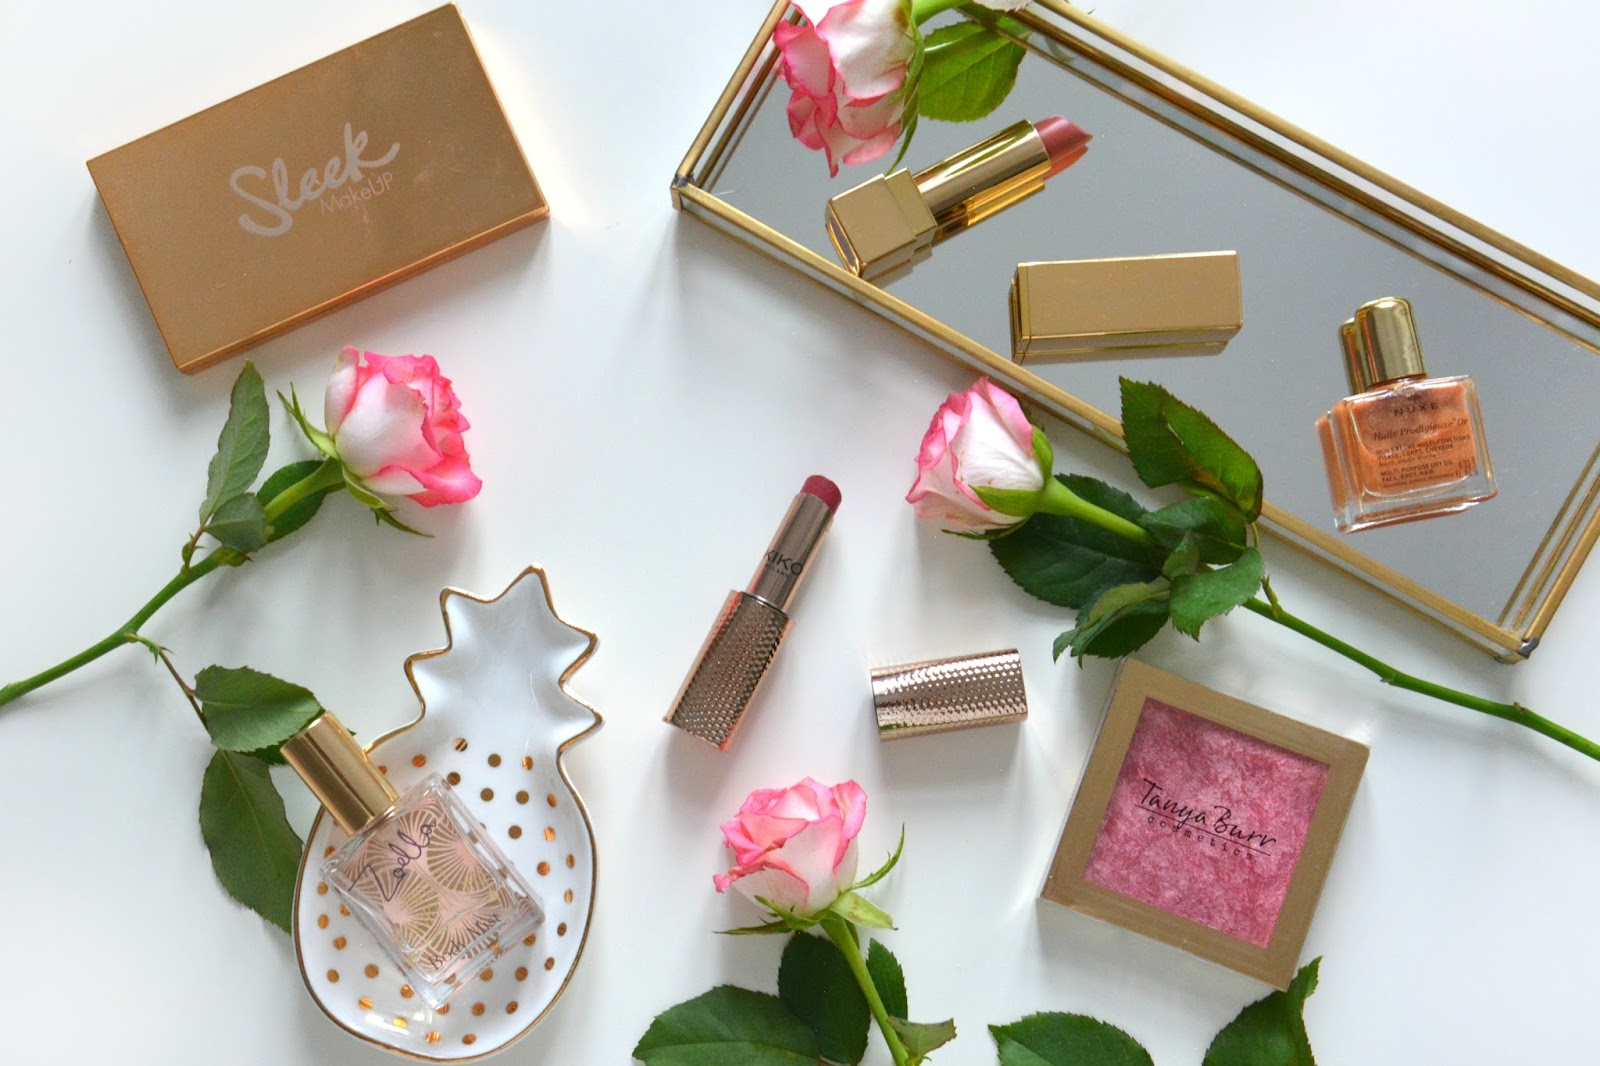 Sleek Solstice Highlighting Palette; Zoella Sweet Inspirations Beauty Mist; Tanya Burr Lipstick; Kiko Lipstick; Nuxe Oil; Tanya Burr Highlighter; Fresh Pink Roses